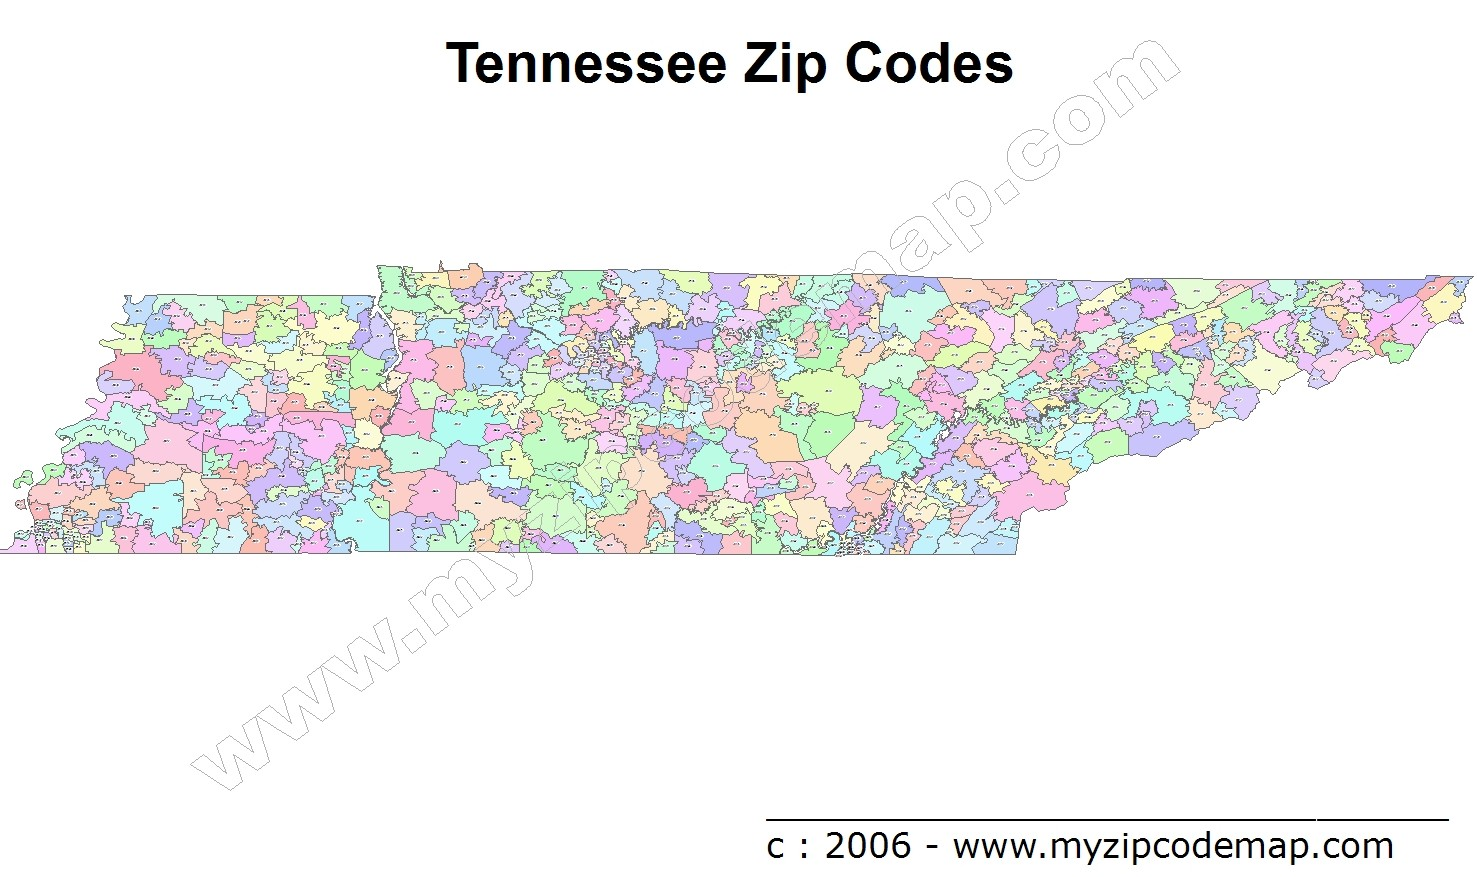 Tennessee Zip Code Maps  Free Tennessee Zip Code Maps